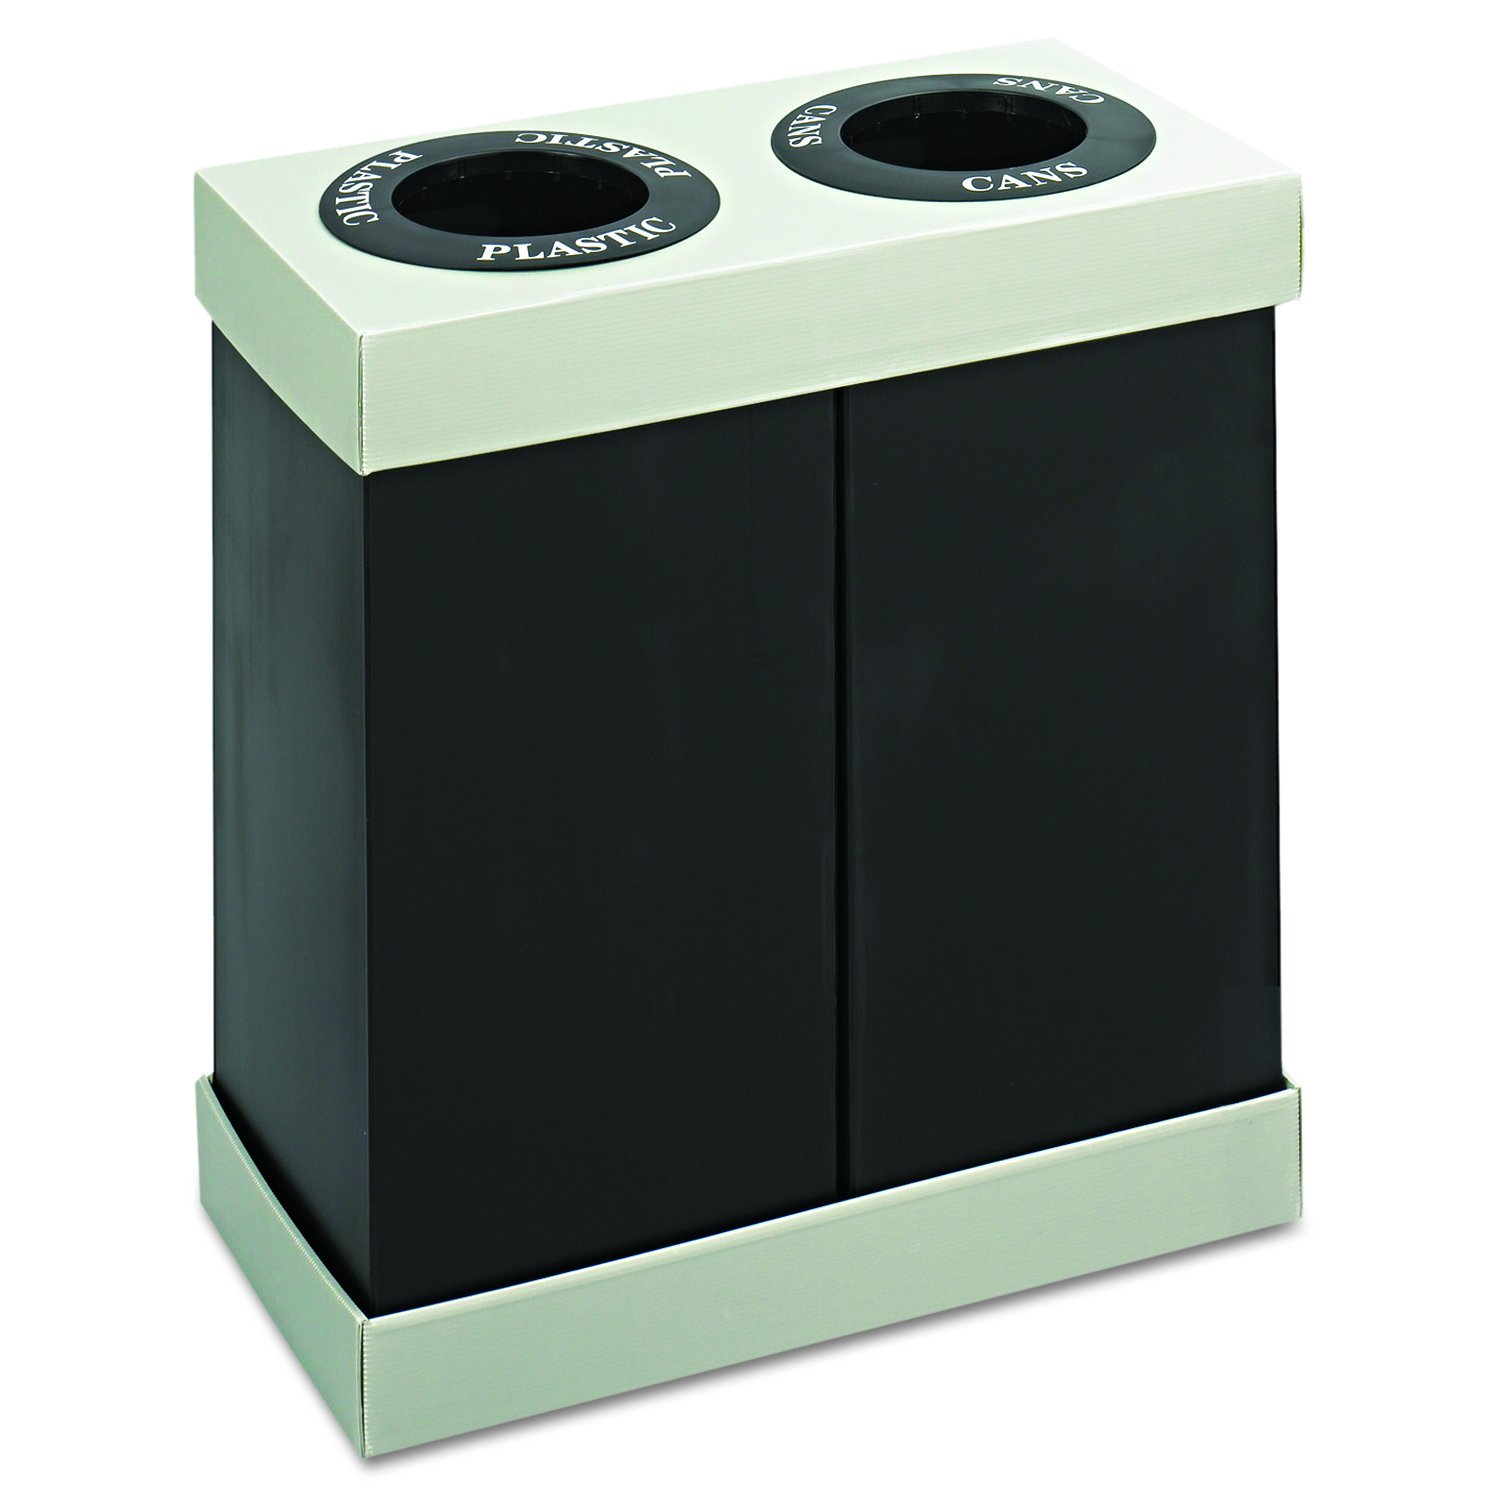 Safco Products 9794BL At-Your-Disposal Waste Recycling Center, Two 28-Gallon Bins, Black by Safco Products